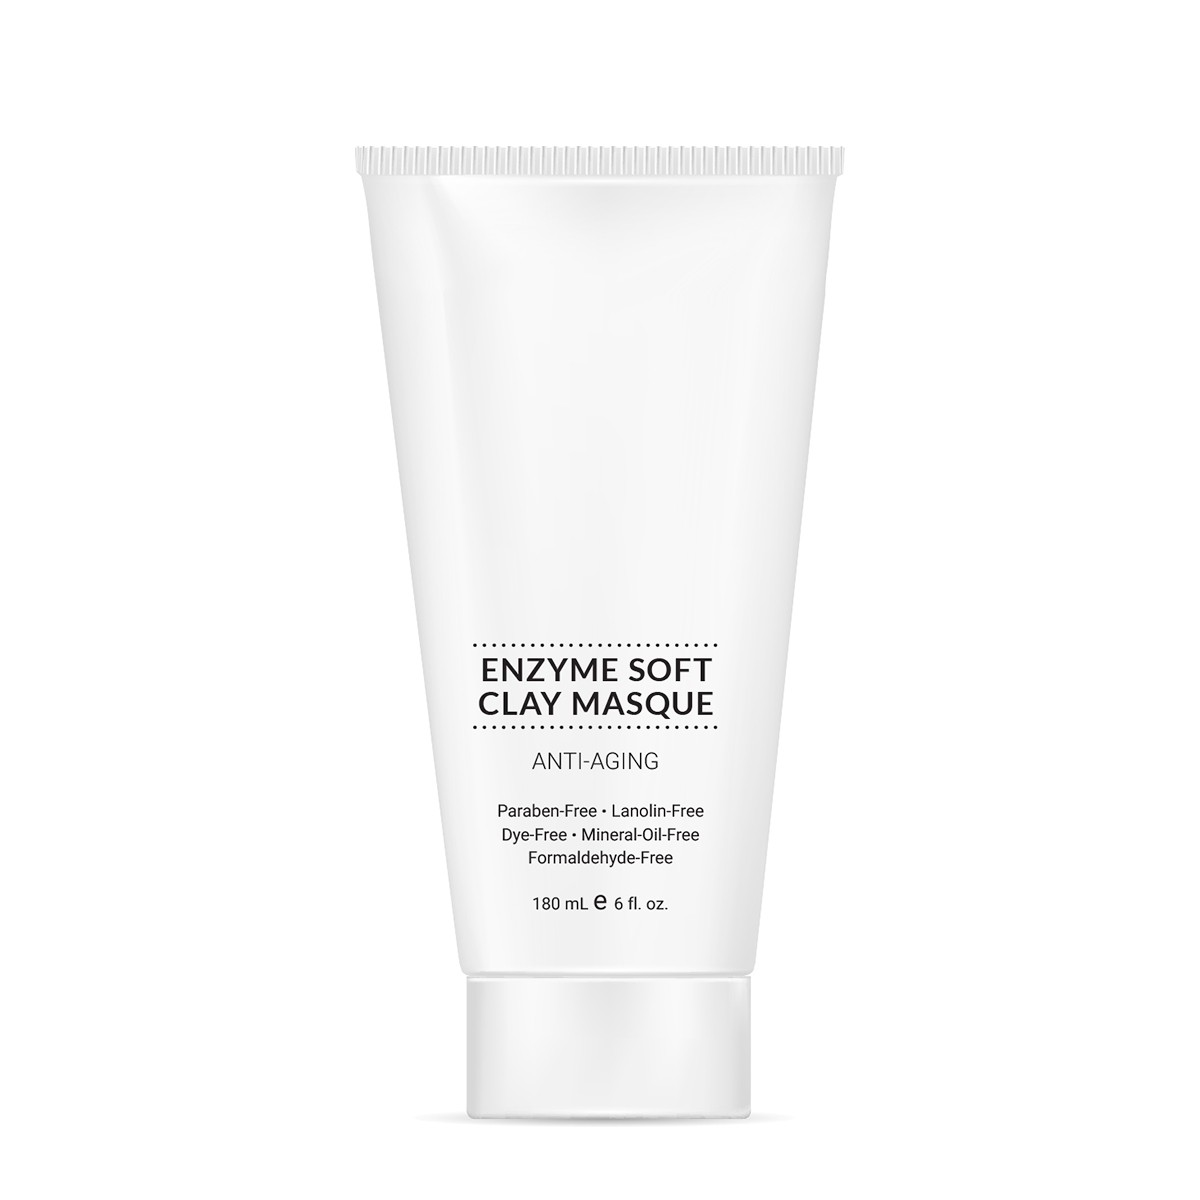 Enzyme Soft Clay Masque